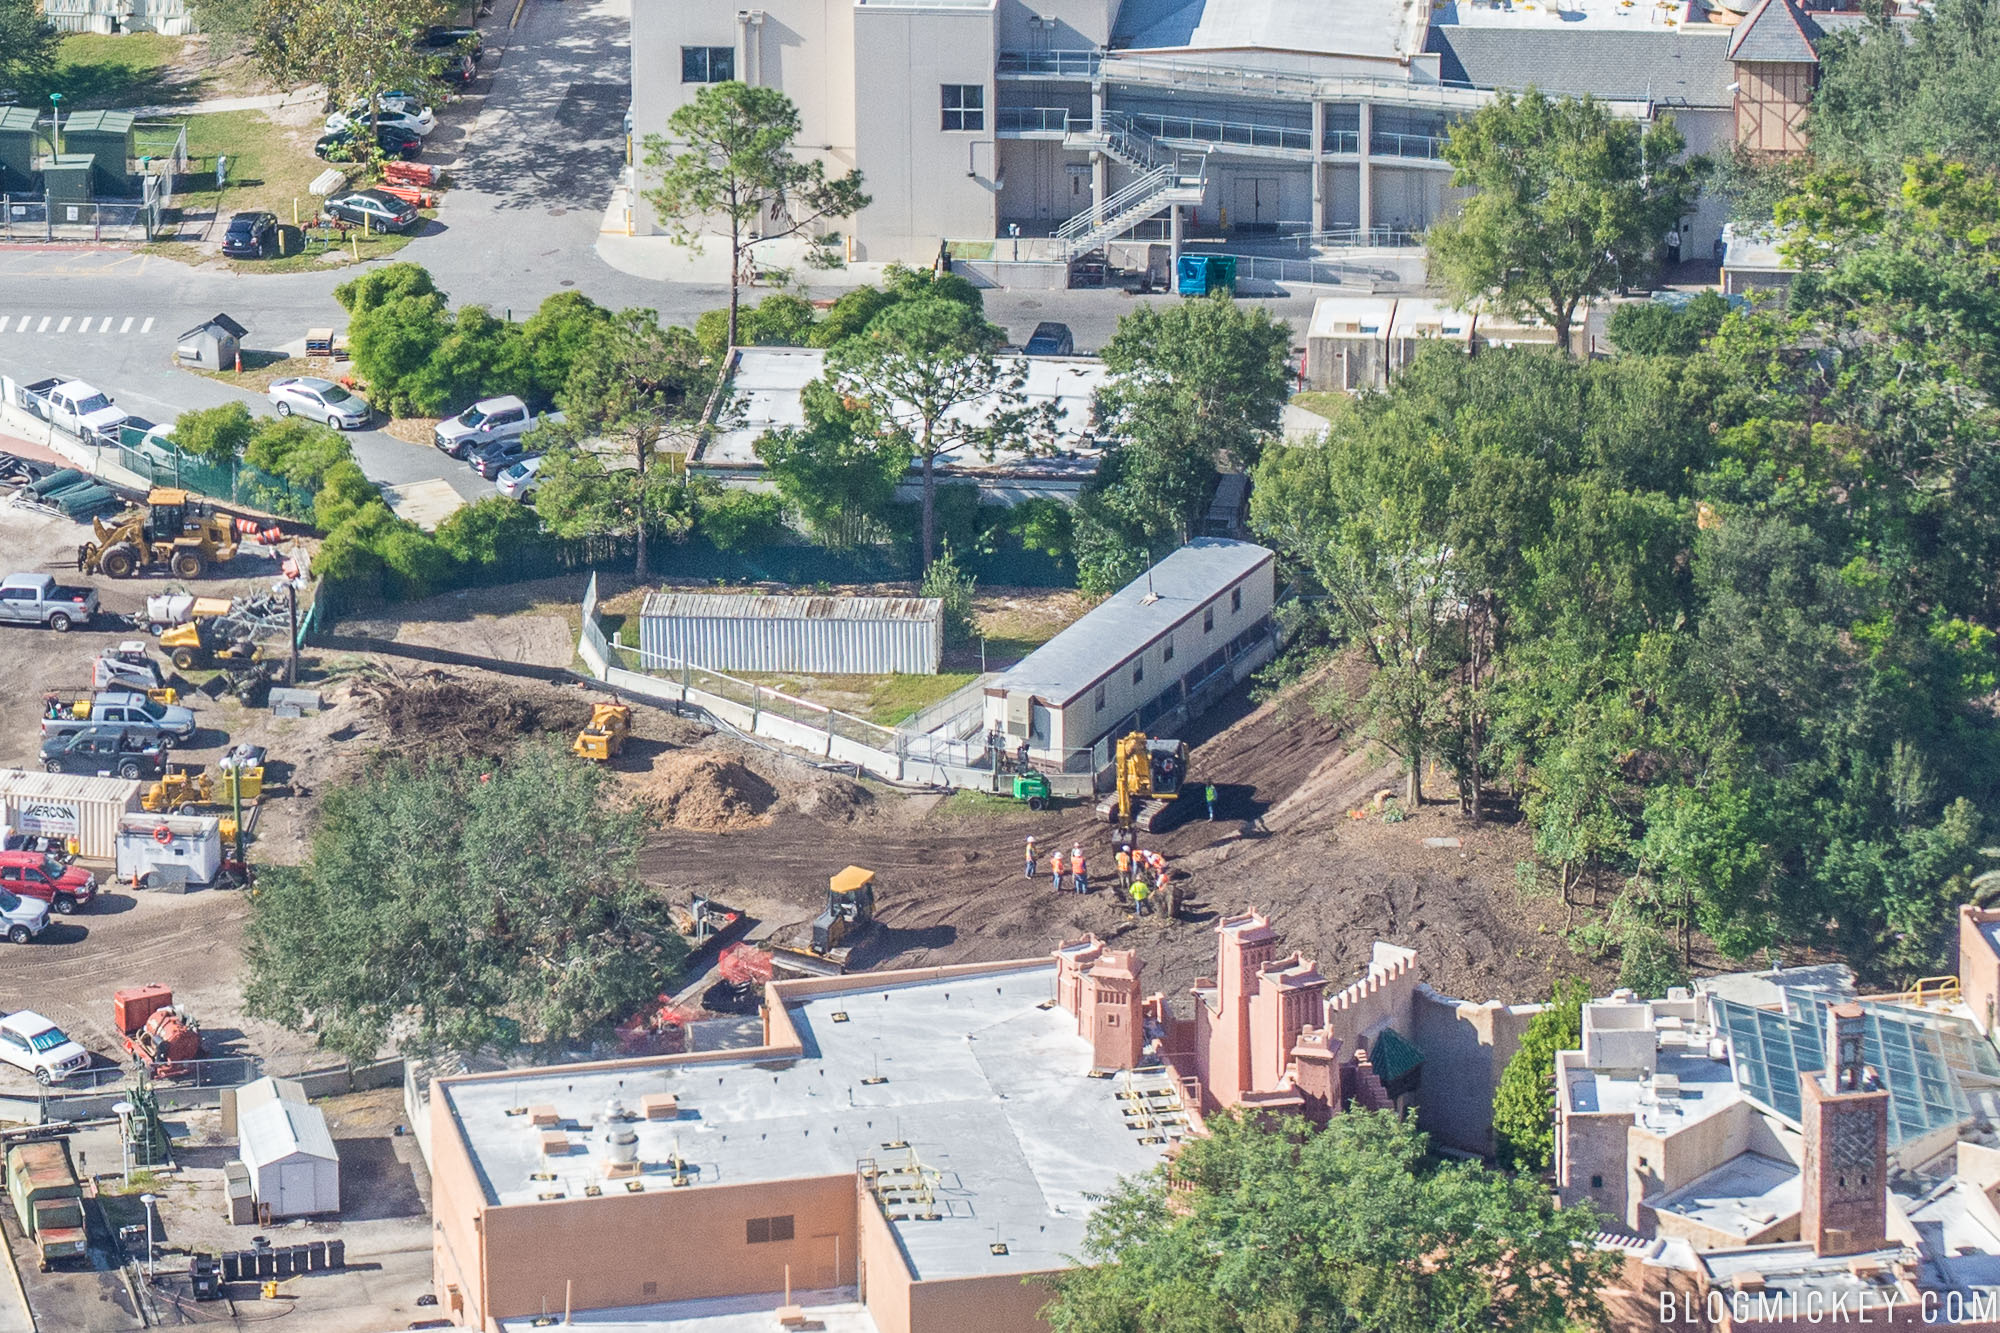 PHOTOS: Land Cleared for Ratatouille Attraction and France